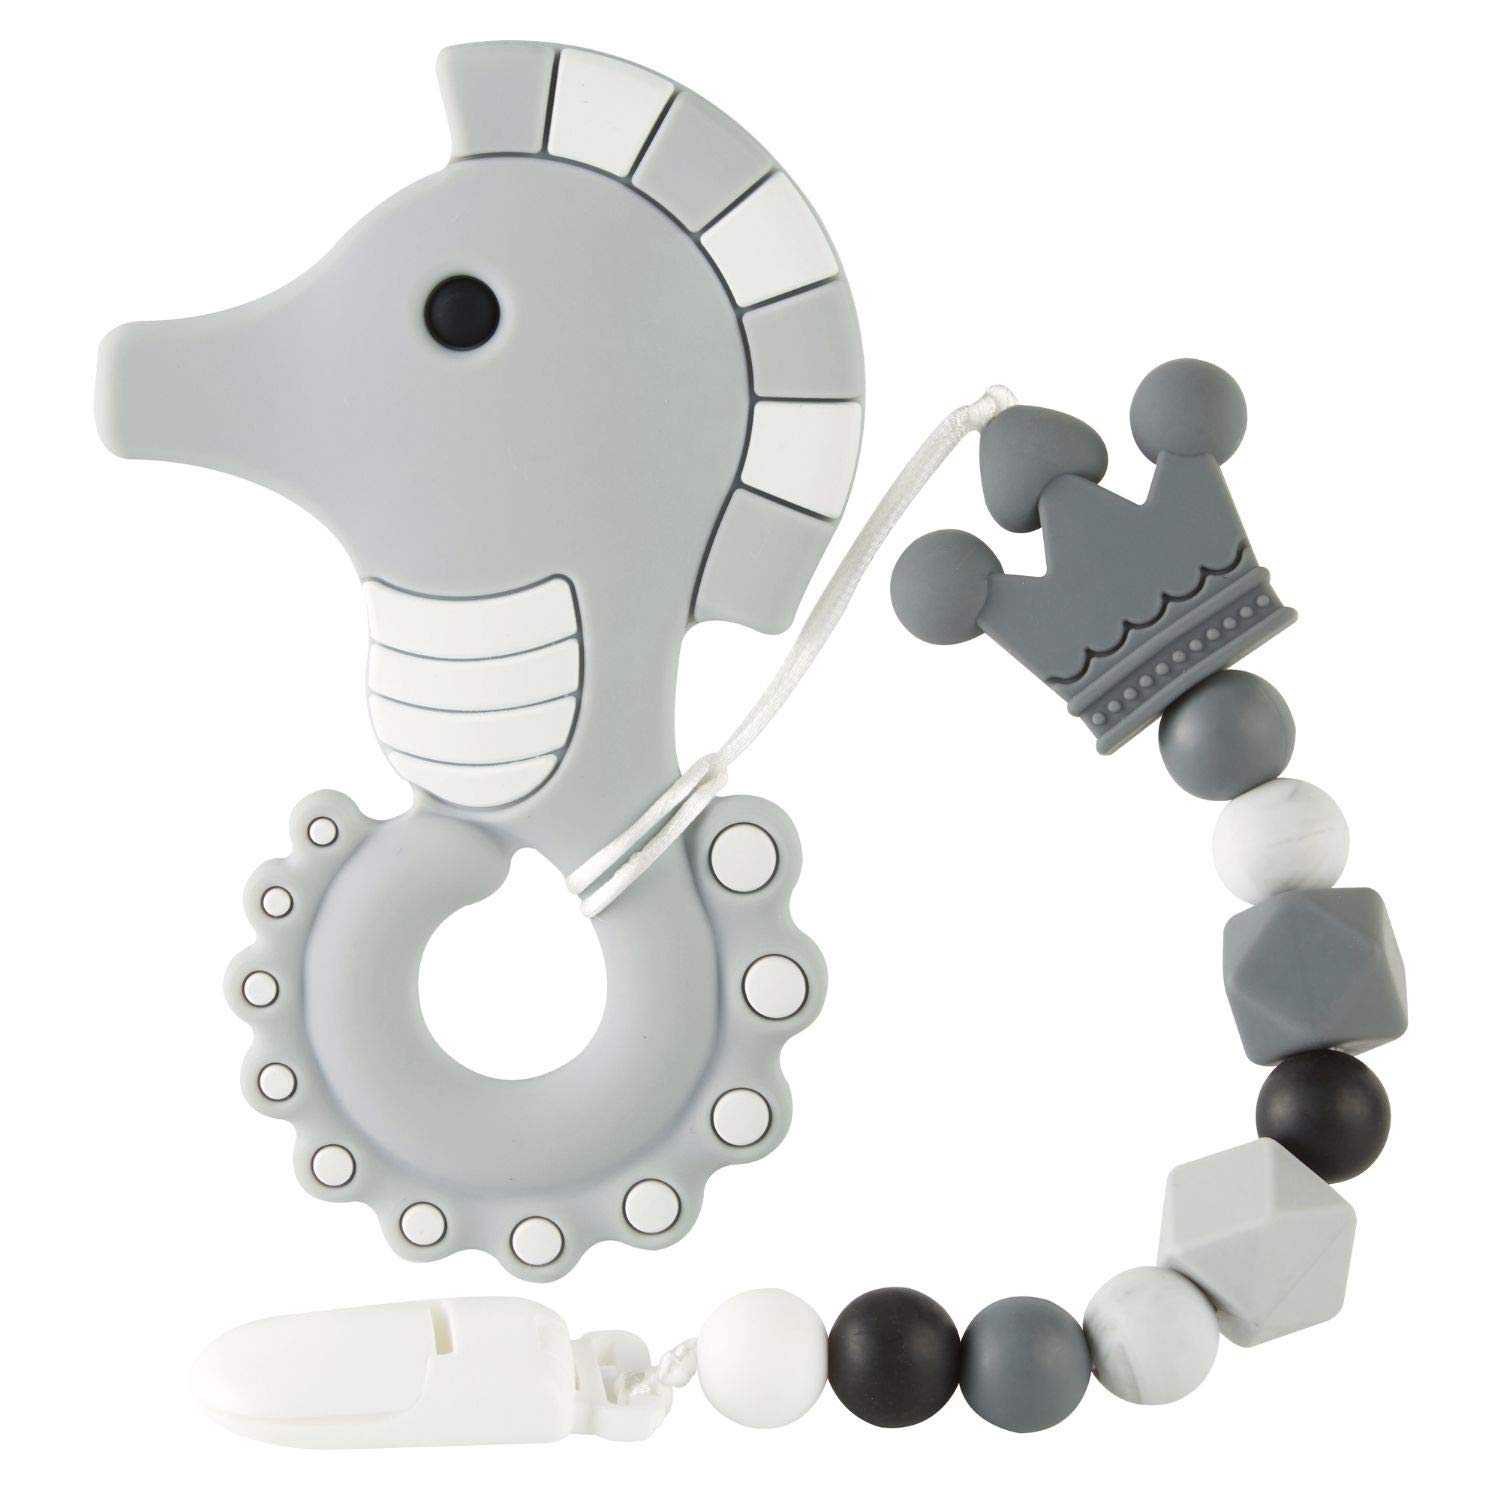 Baby Teething Toys, Silicone Cartoon Design Teether with Relief Beads Binky Holder and Pacifier Clips for Toddlers & Infant (Gray)